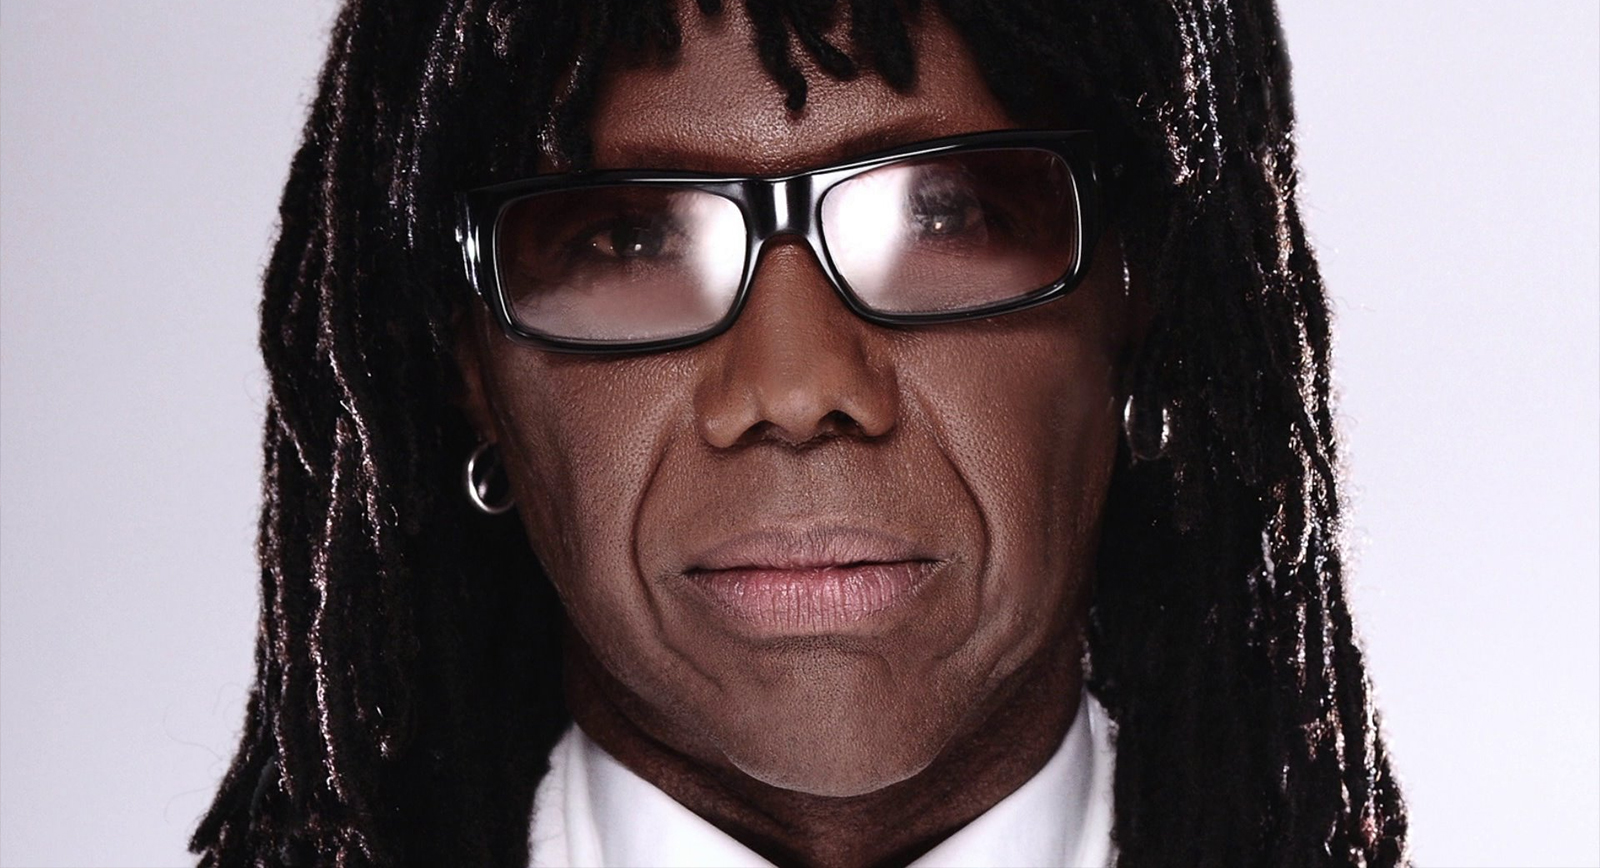 Chic-Featuring-Nile-Rodgers-2016-Concert-Tour-Live-Schedule-Calendar-Dates-FI